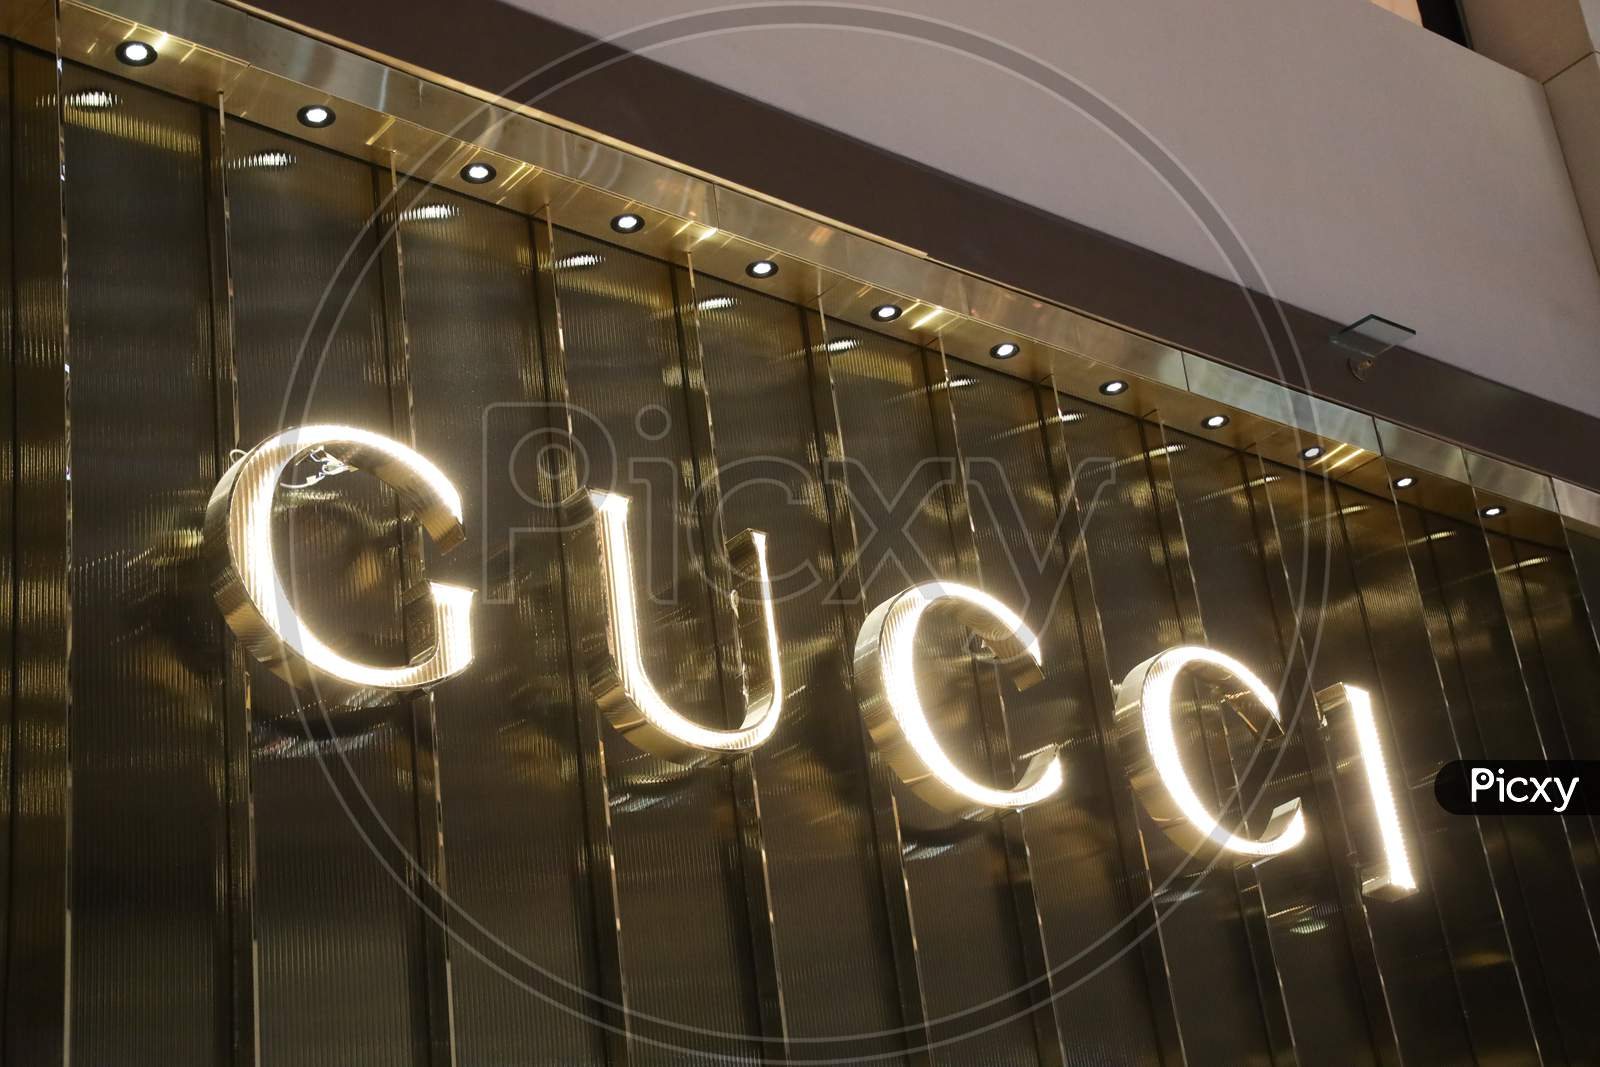 Image Of Gucci Fashion Store Name Board Ij649988 Picxy